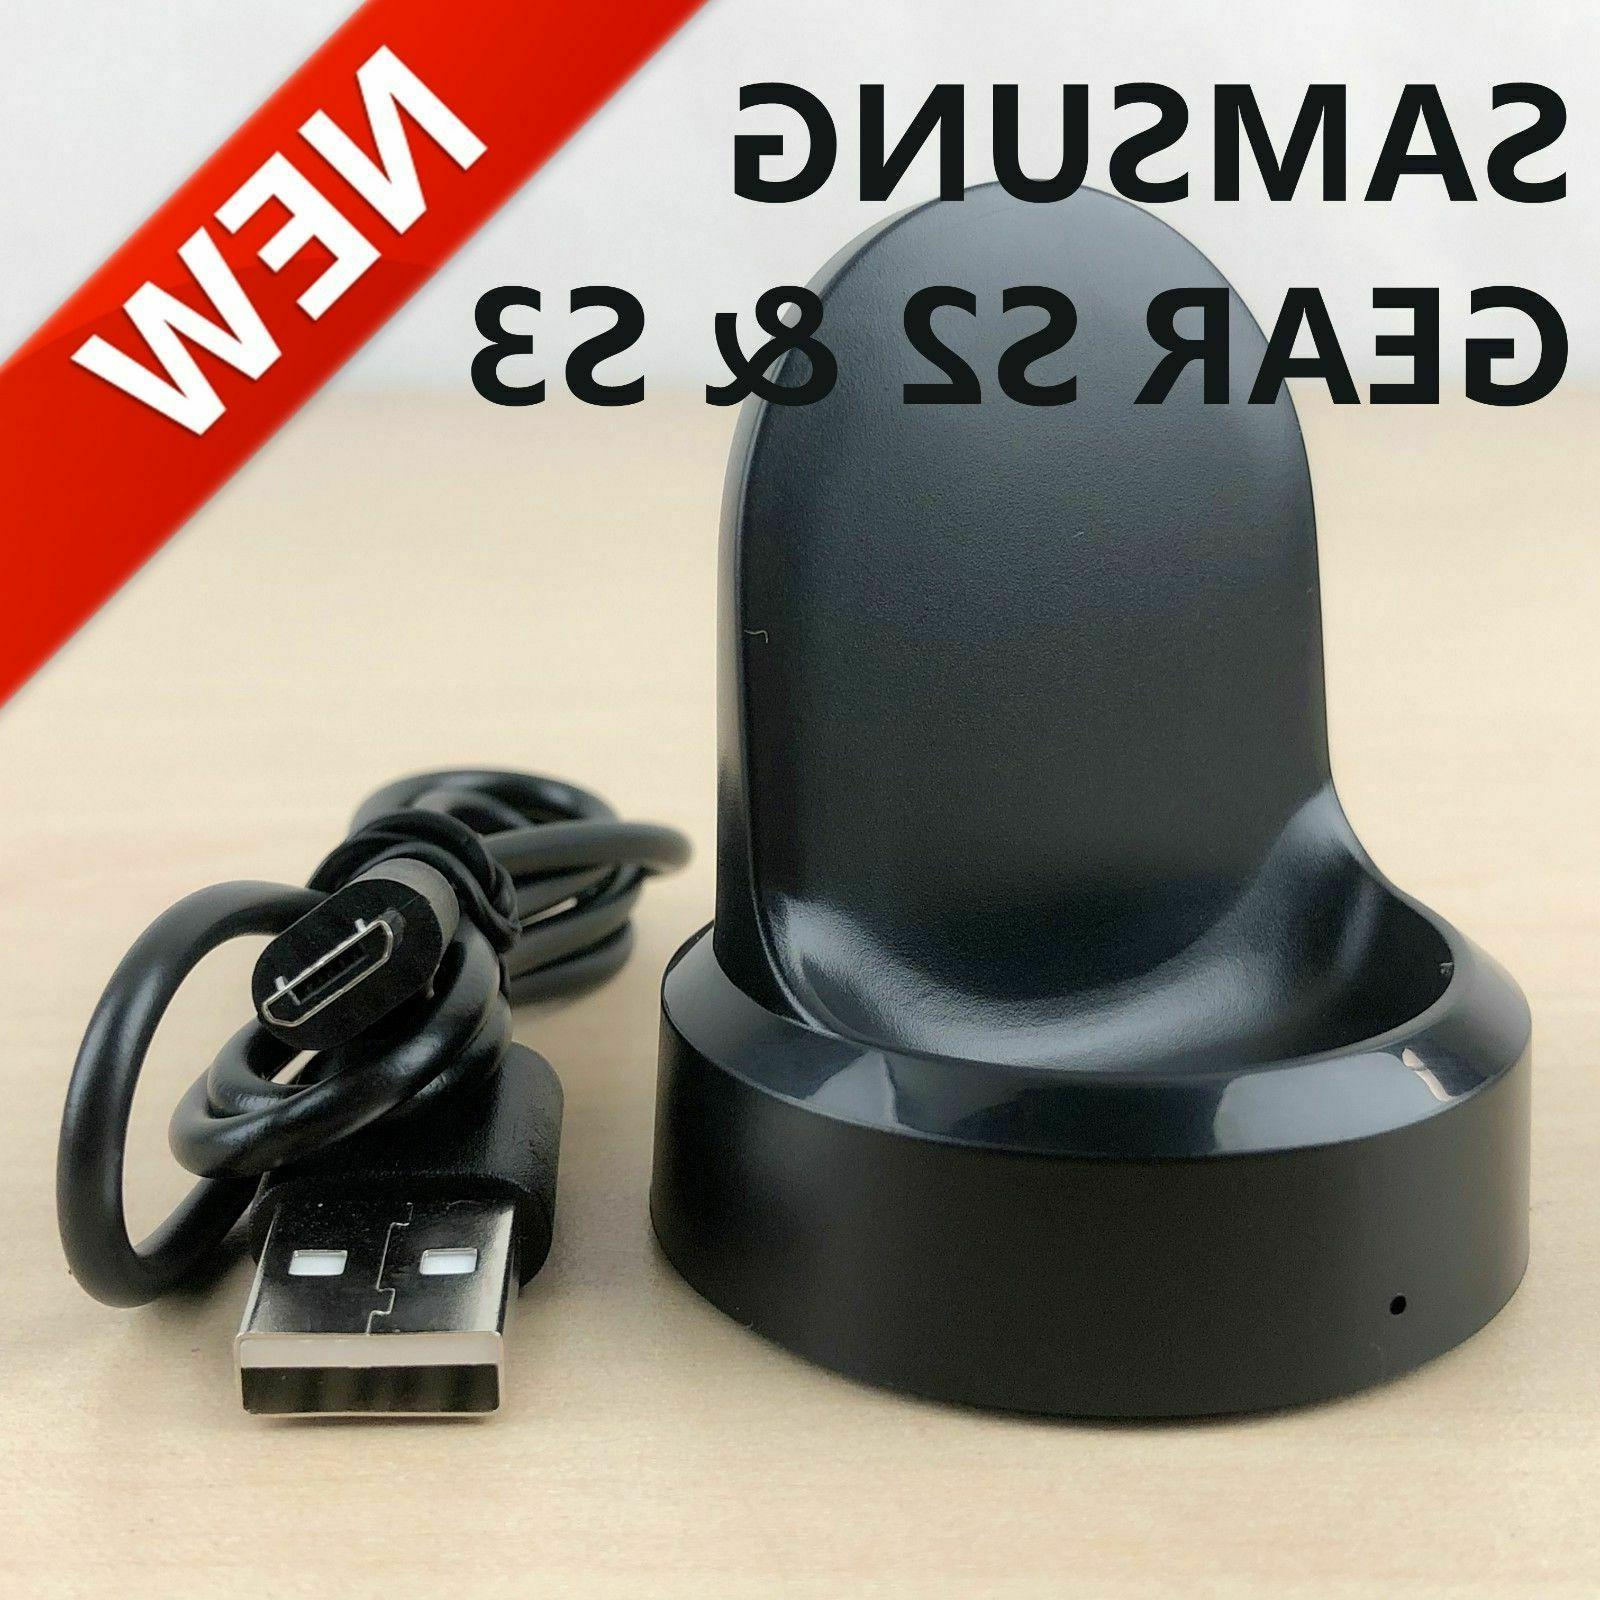 NEW Wireless Dock / USB